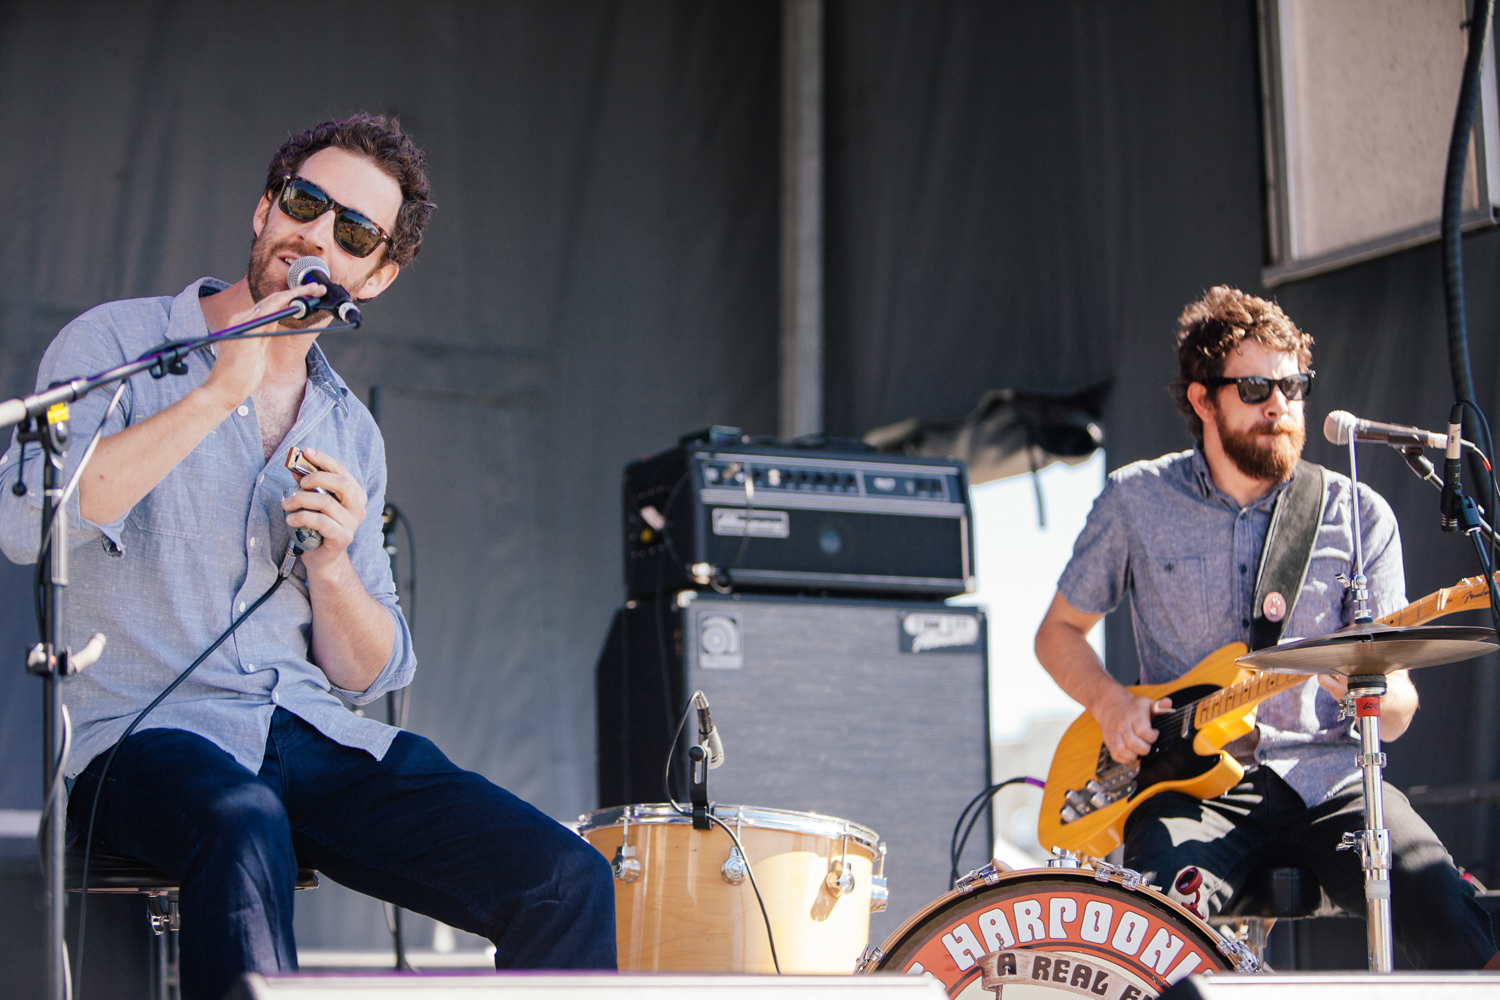 The Harpoonist & The Axe Murderer @ SHOREFEST photo by Christine McAvoy